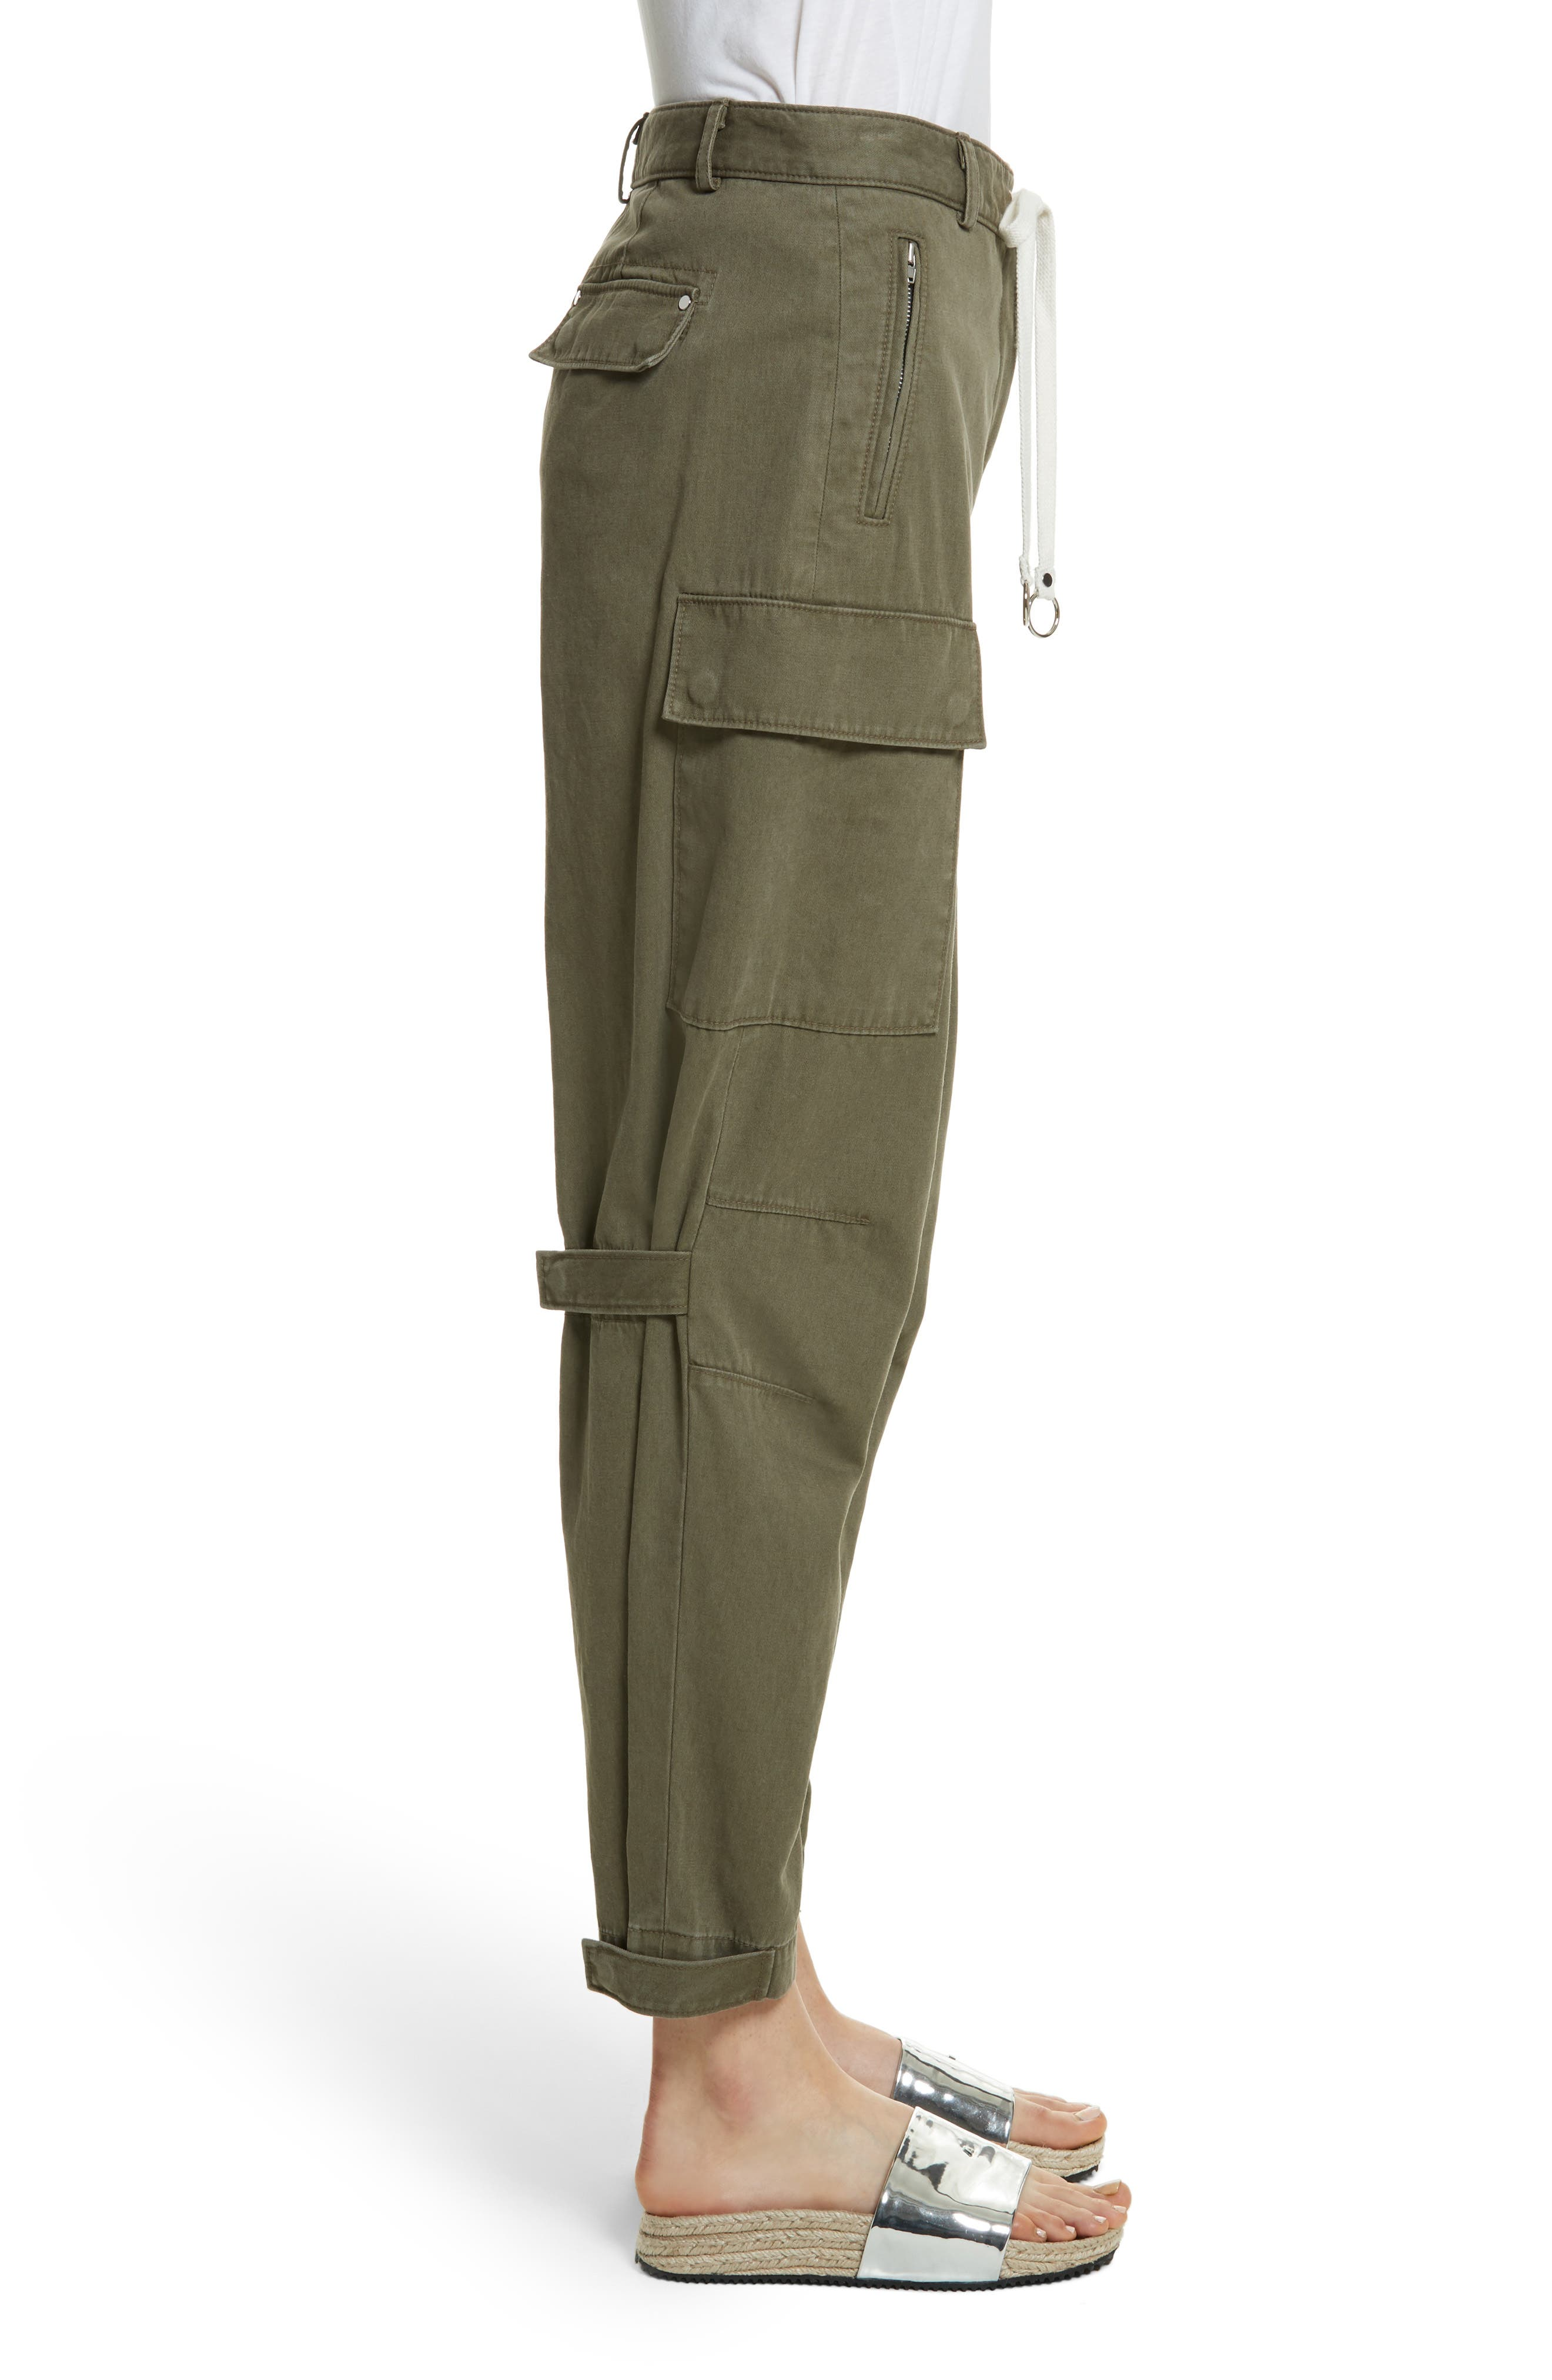 T by Alexander Wang Twill Cargo Pants,                             Alternate thumbnail 3, color,                             309